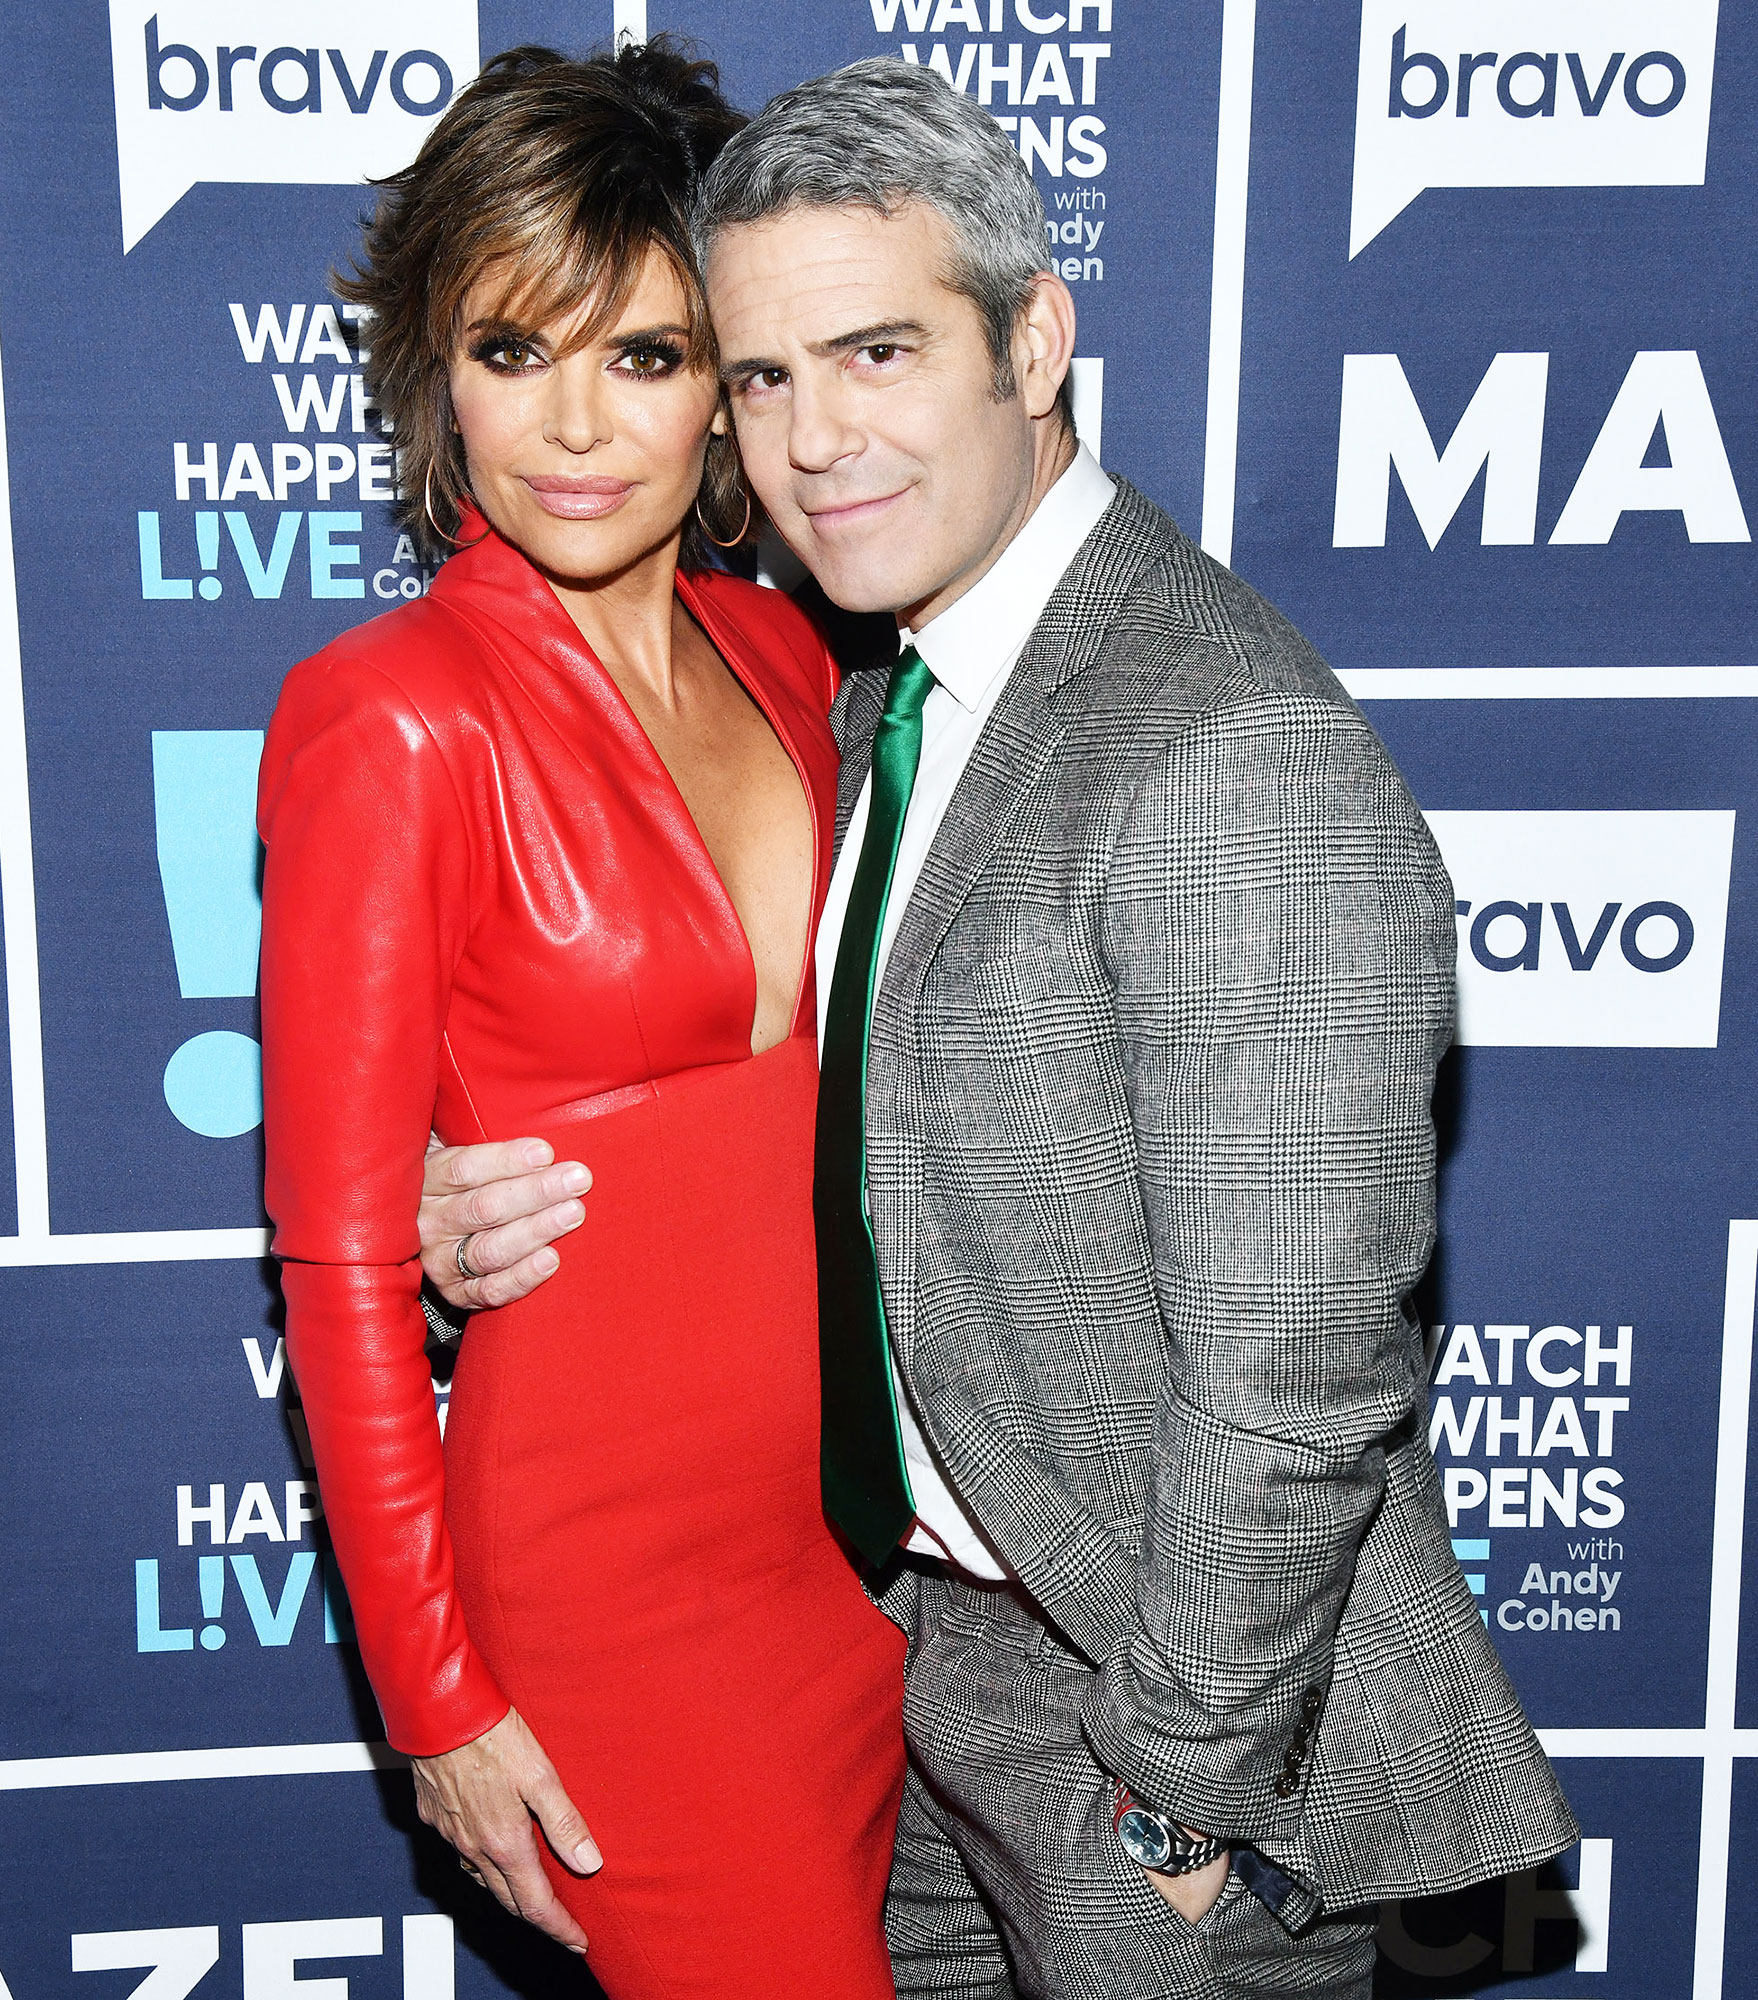 Lisa Rinna Sends Love Andy Cohen Son Birth